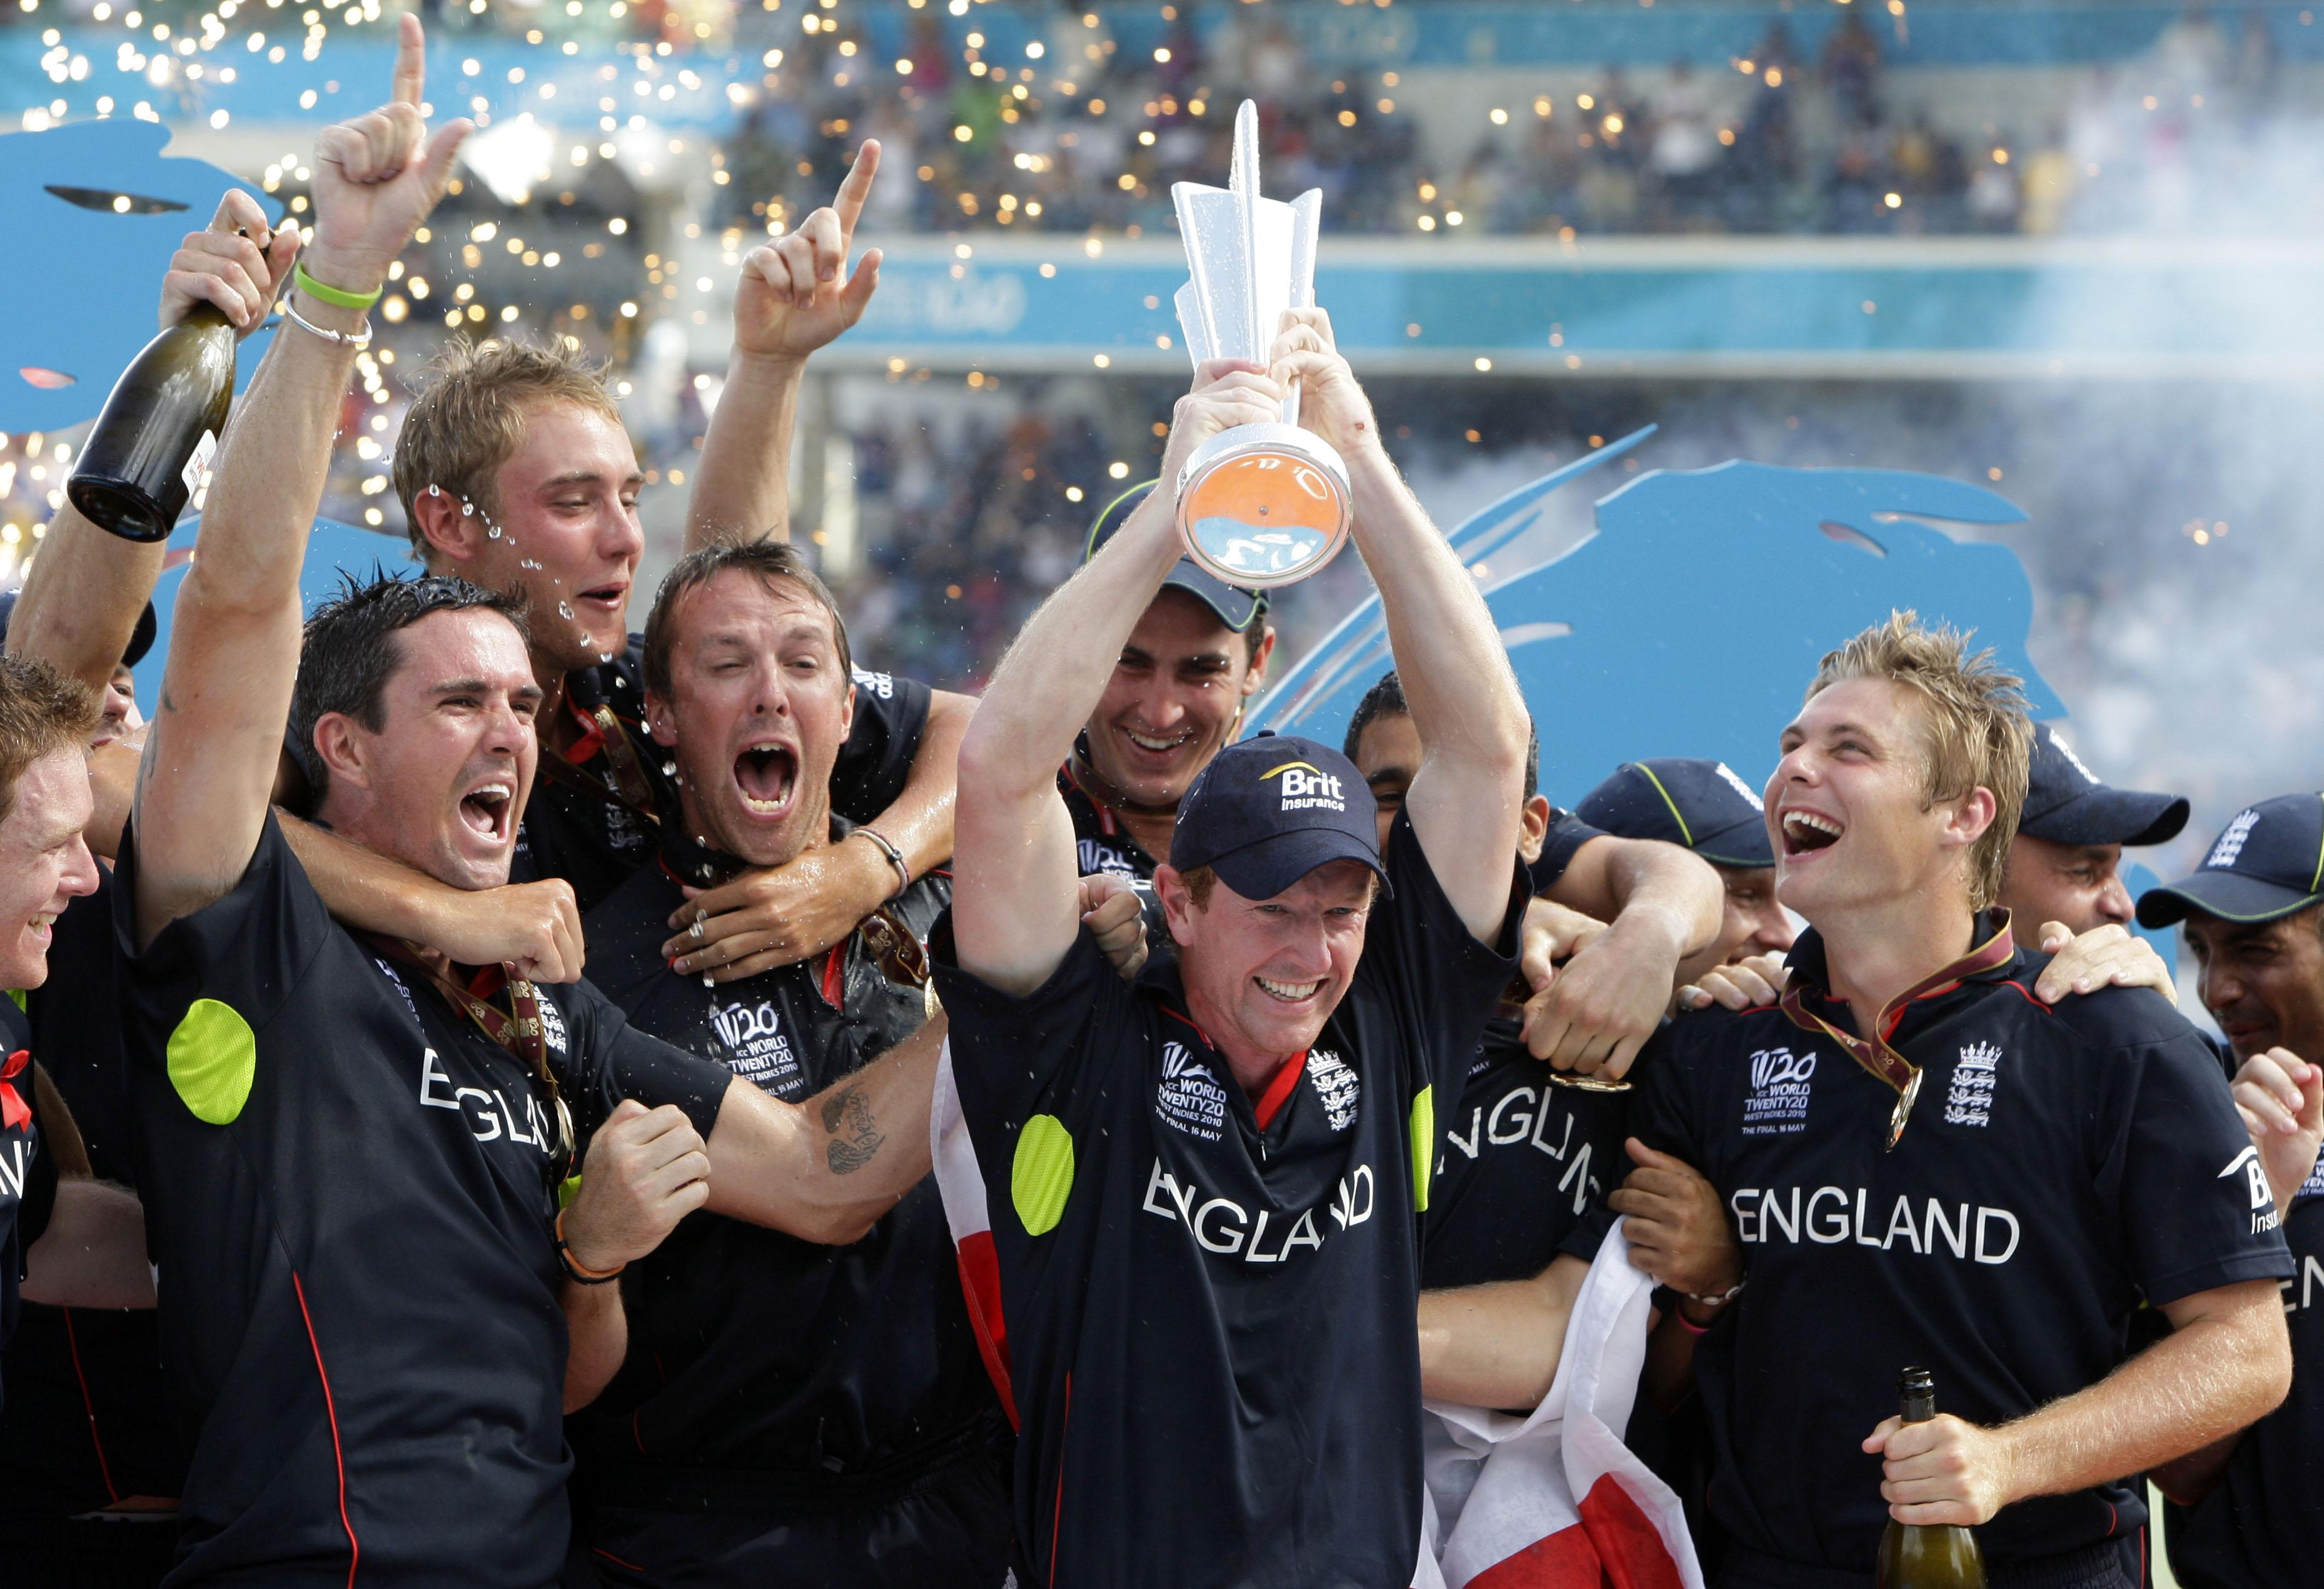 Paul Collingwood is the only player to lead England to World Cup glory